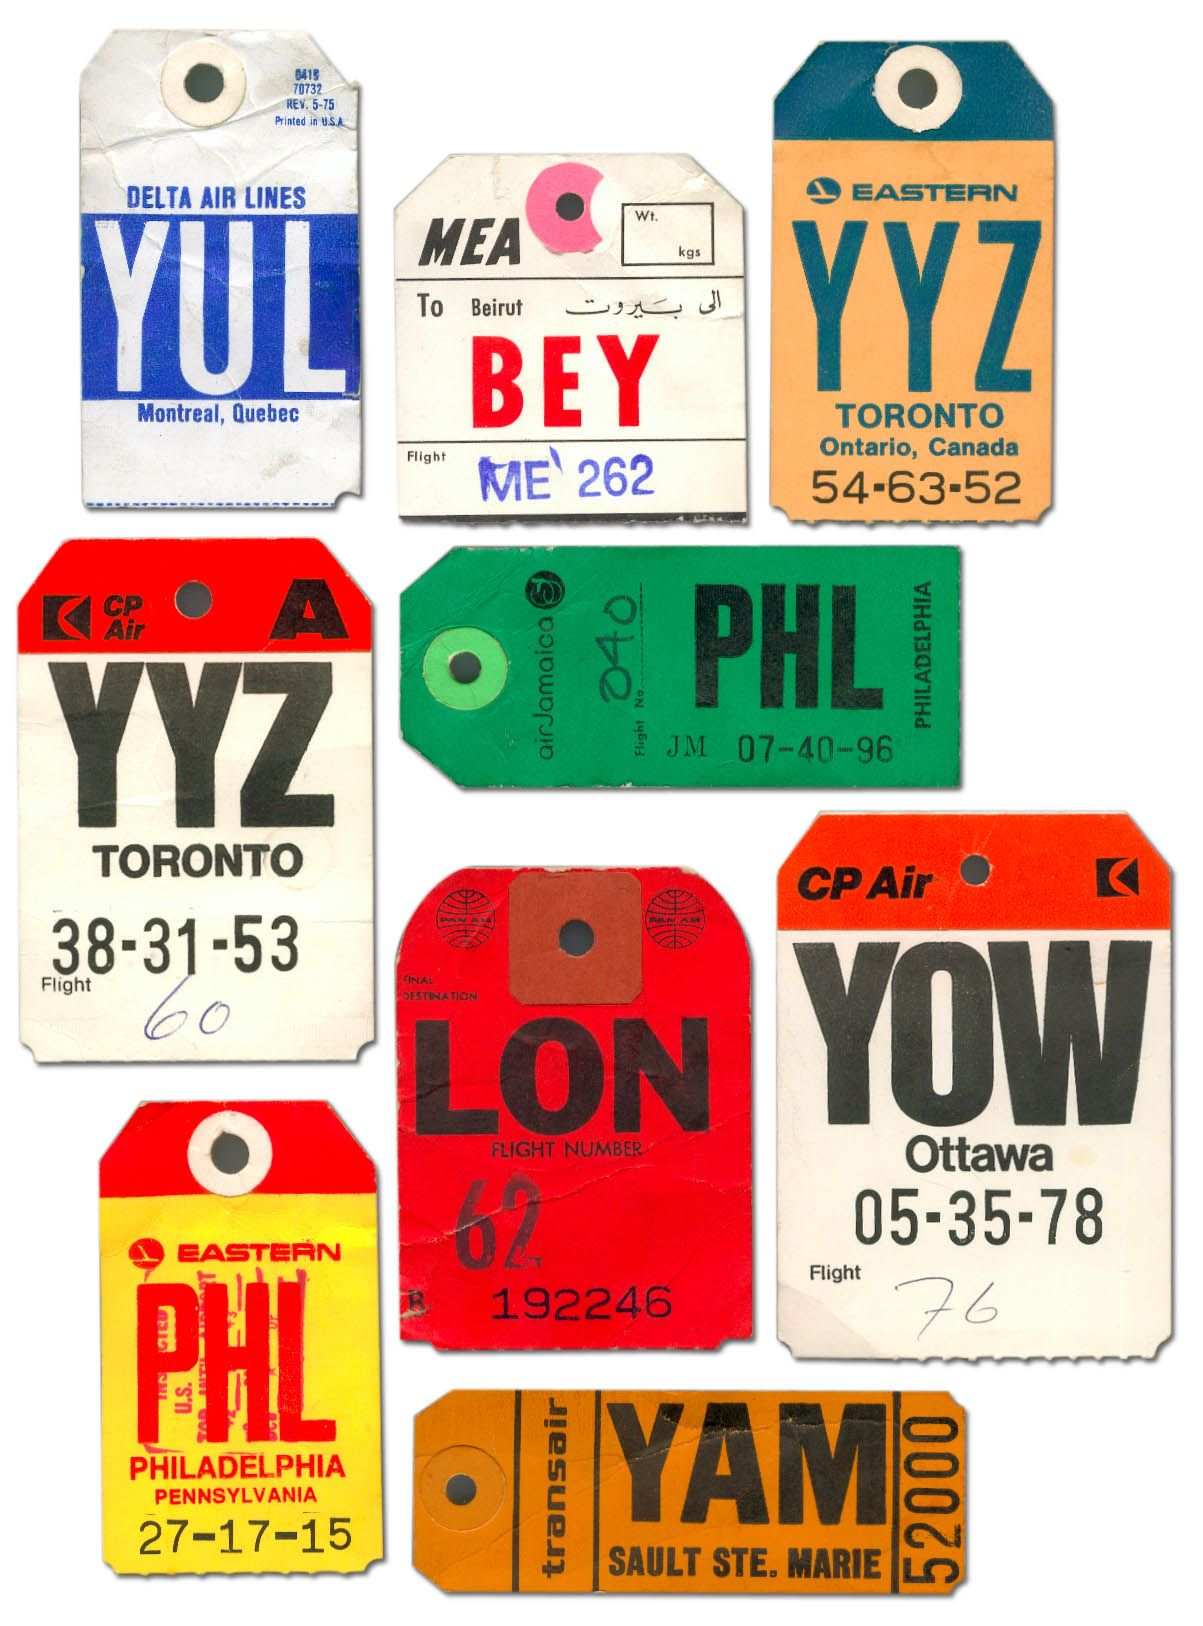 Casino luggage tags